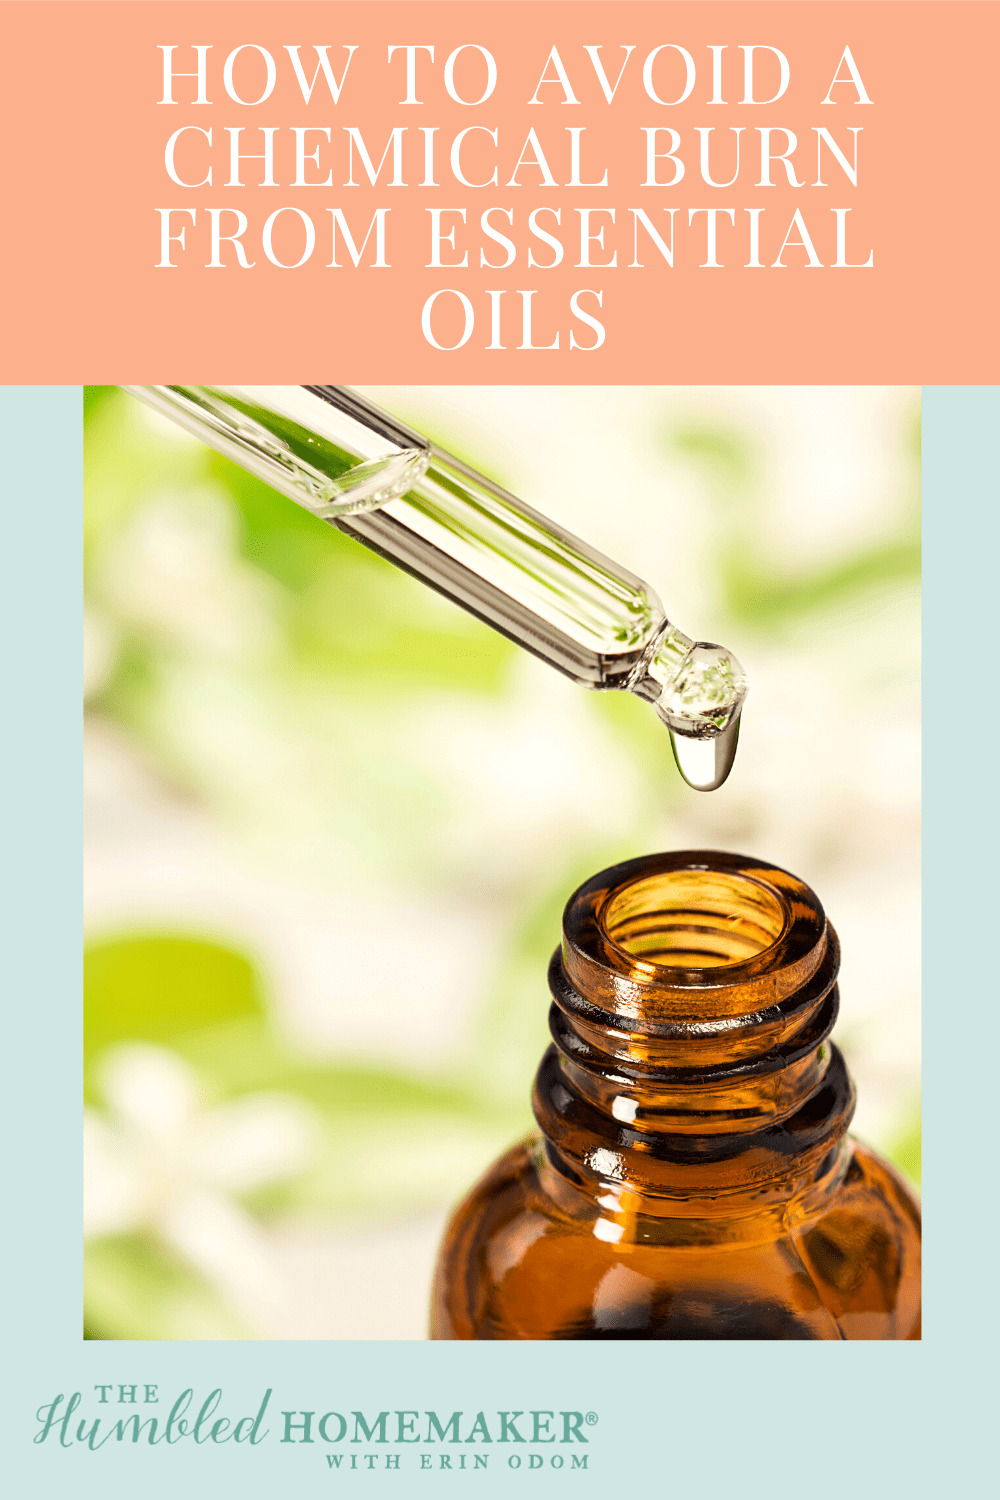 Use essential oils safely!I would have never guessed that this popularessential oil would give me a chemical burn! But it did, and I might now be scarred forever. If only I had better educated myself before using it!